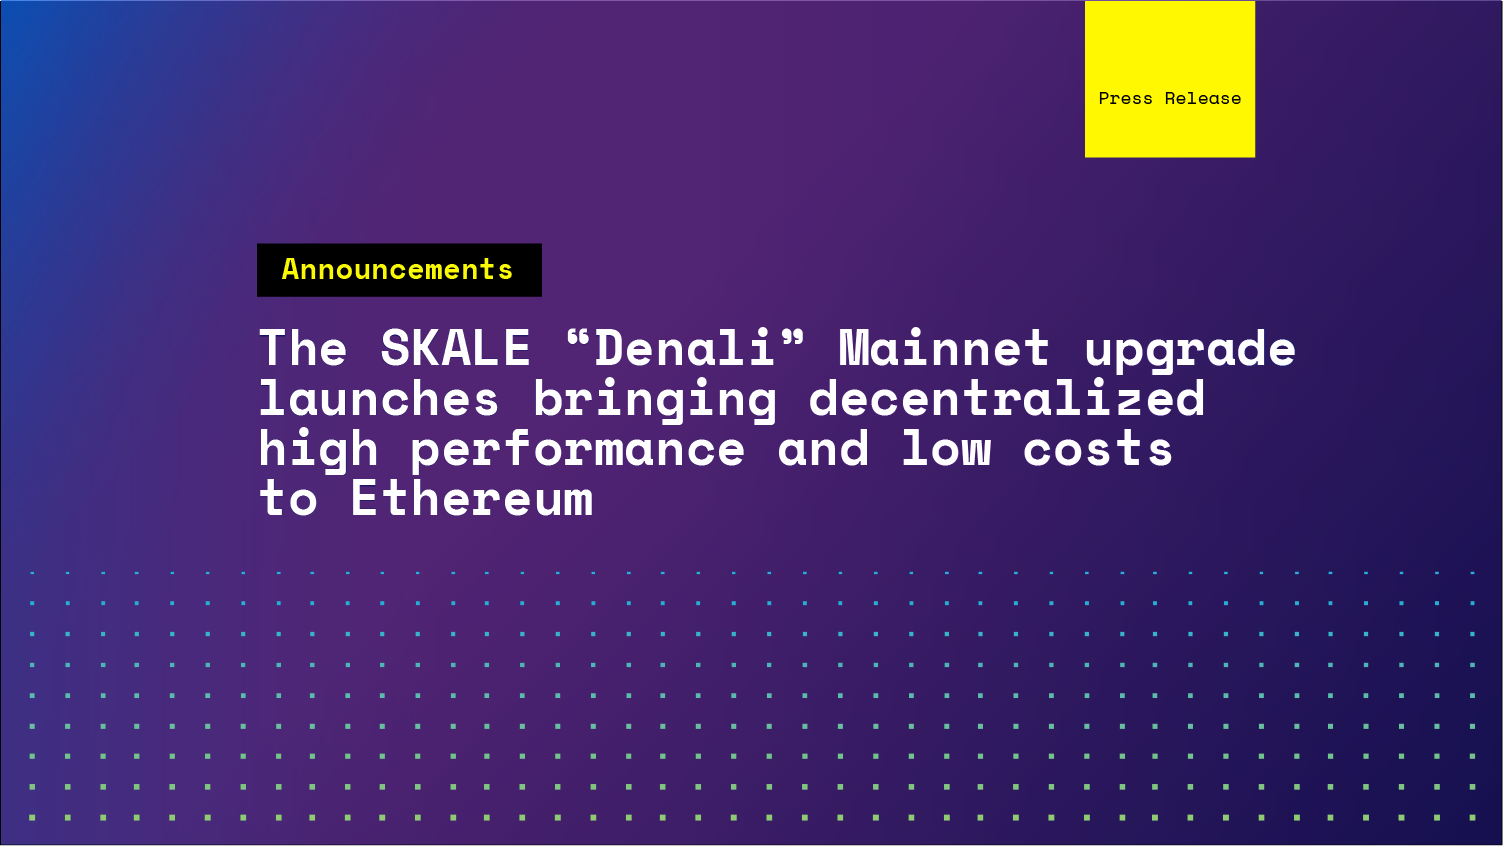 """The SKALE """"Denali"""" Mainnet upgrade launches bringing decentralized high performance and low costs to Ethereum"""